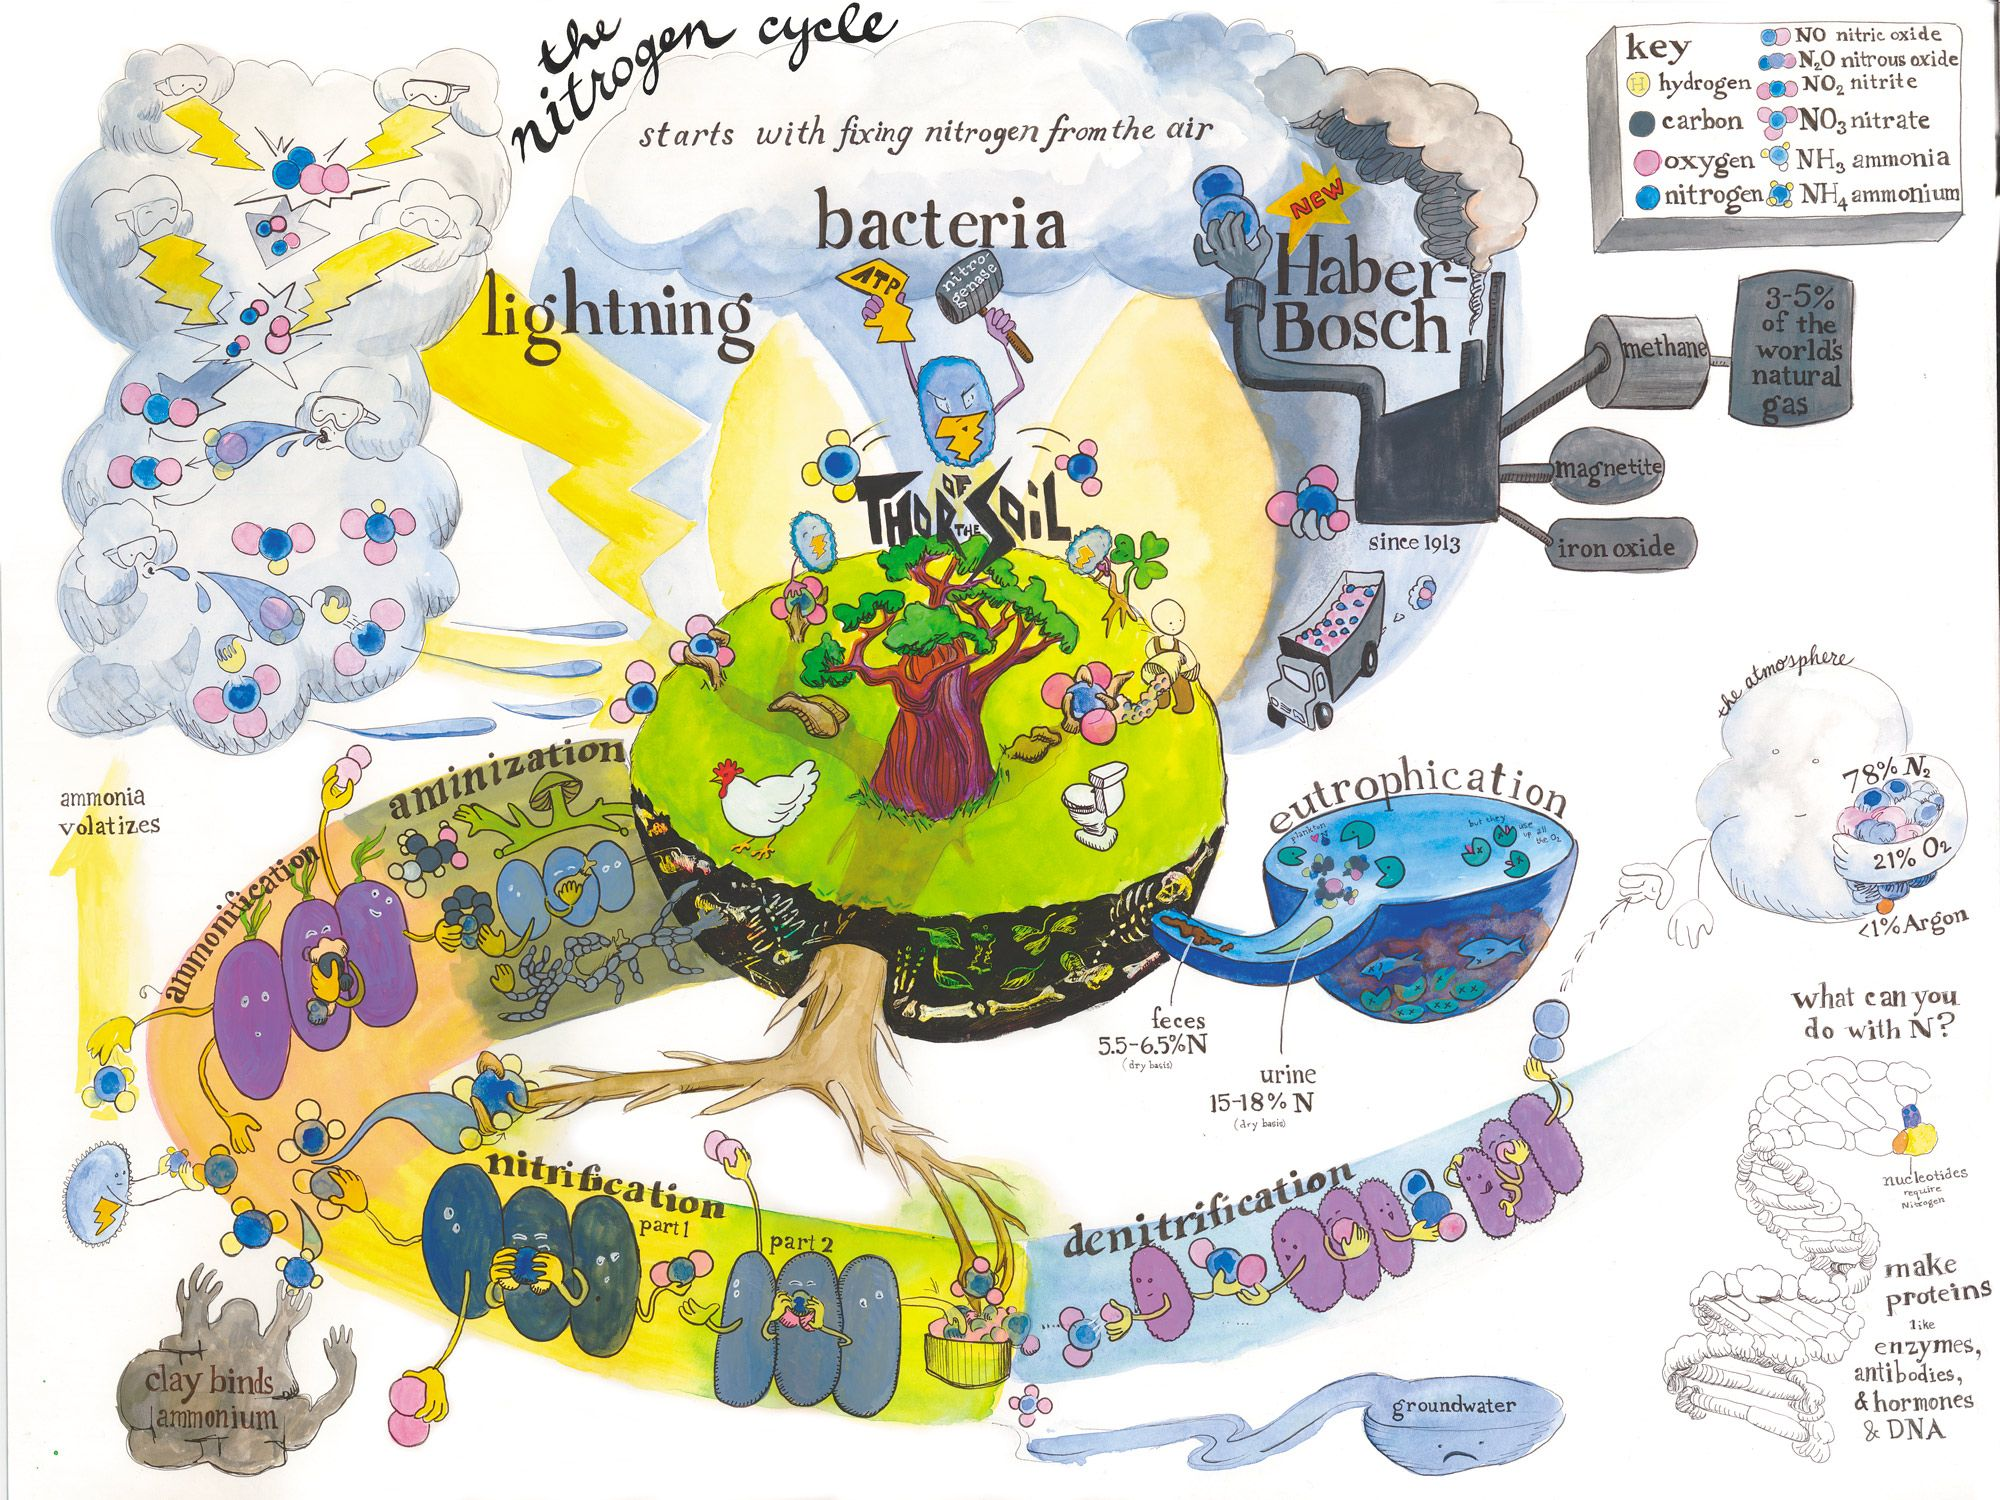 Rock Cycle Clim Te We R W Ter Cycle C Rb Cycle Nitrogen Cycle